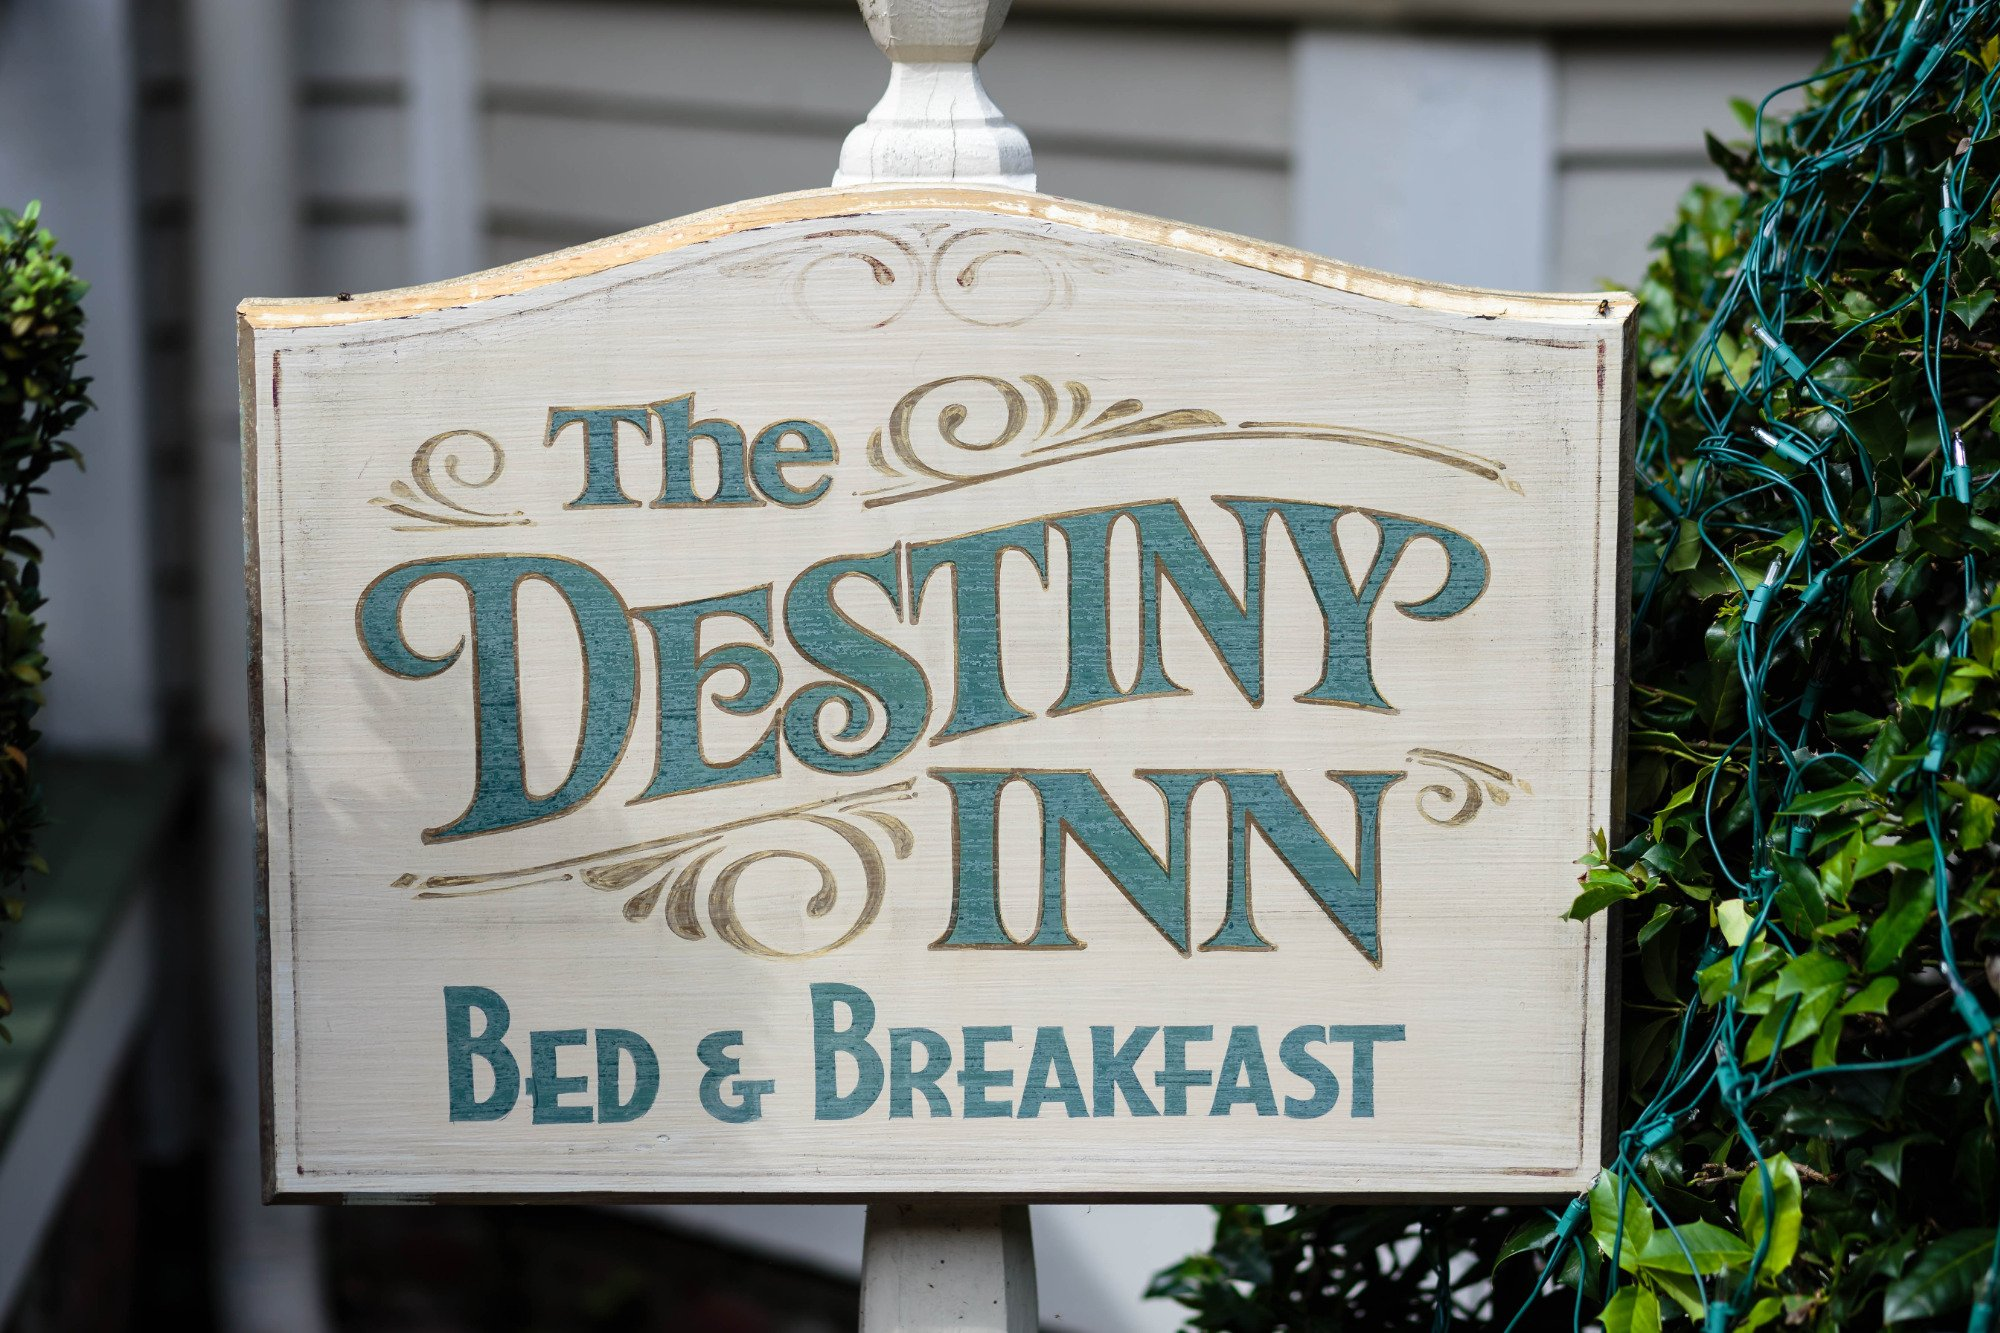 The Destiny Inn Bed & Breakfast